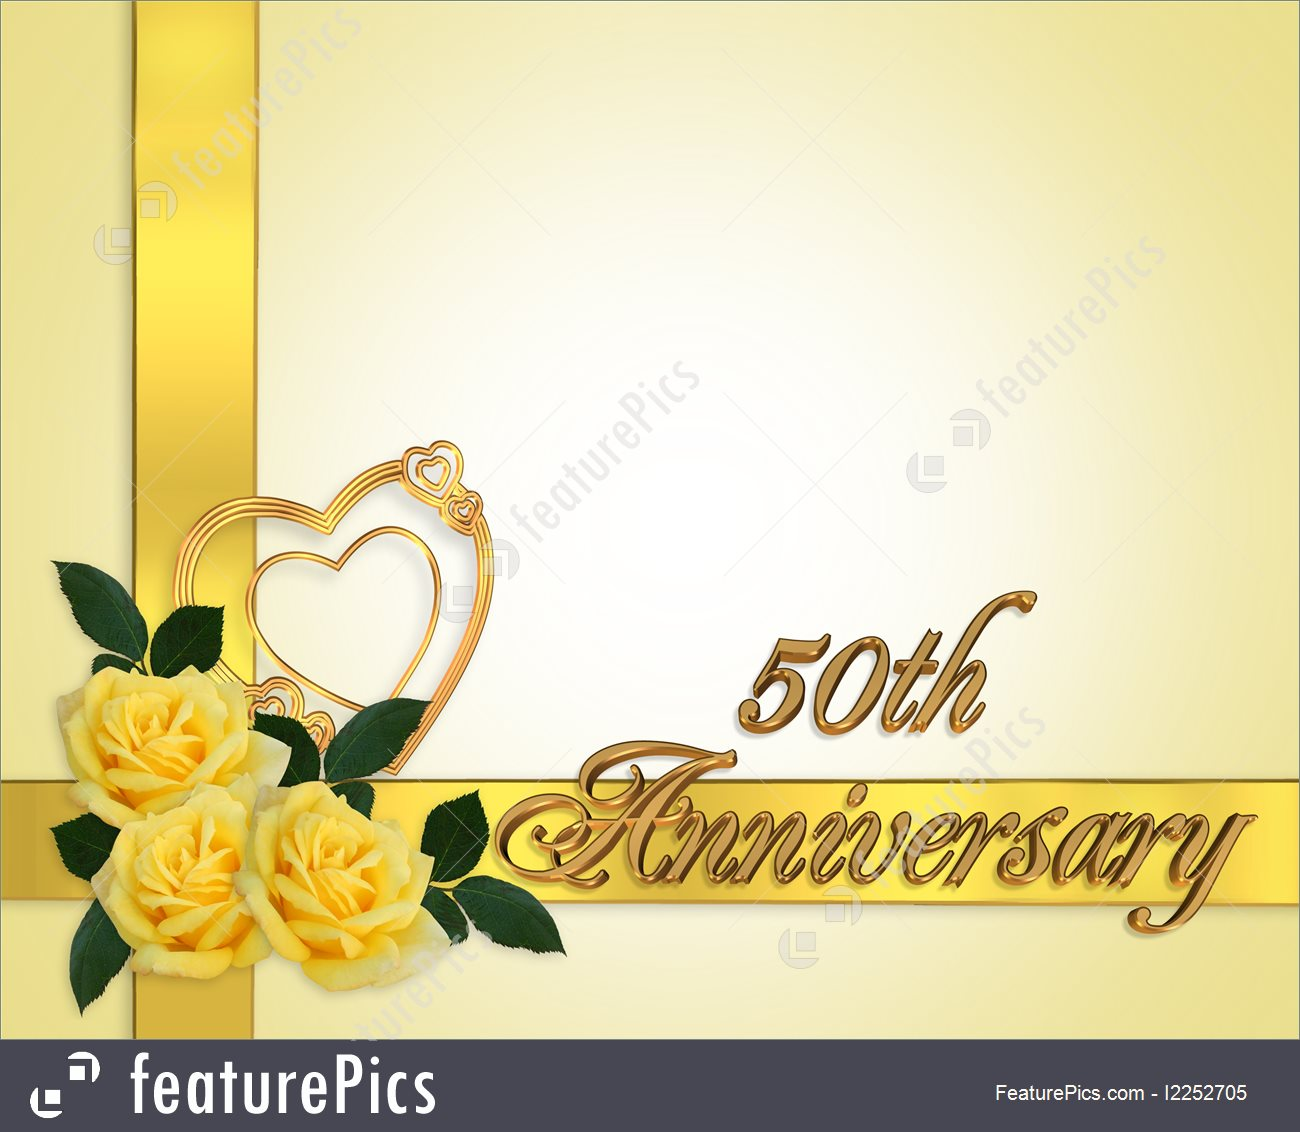 Templates  Wedding Anniversary 50th Background